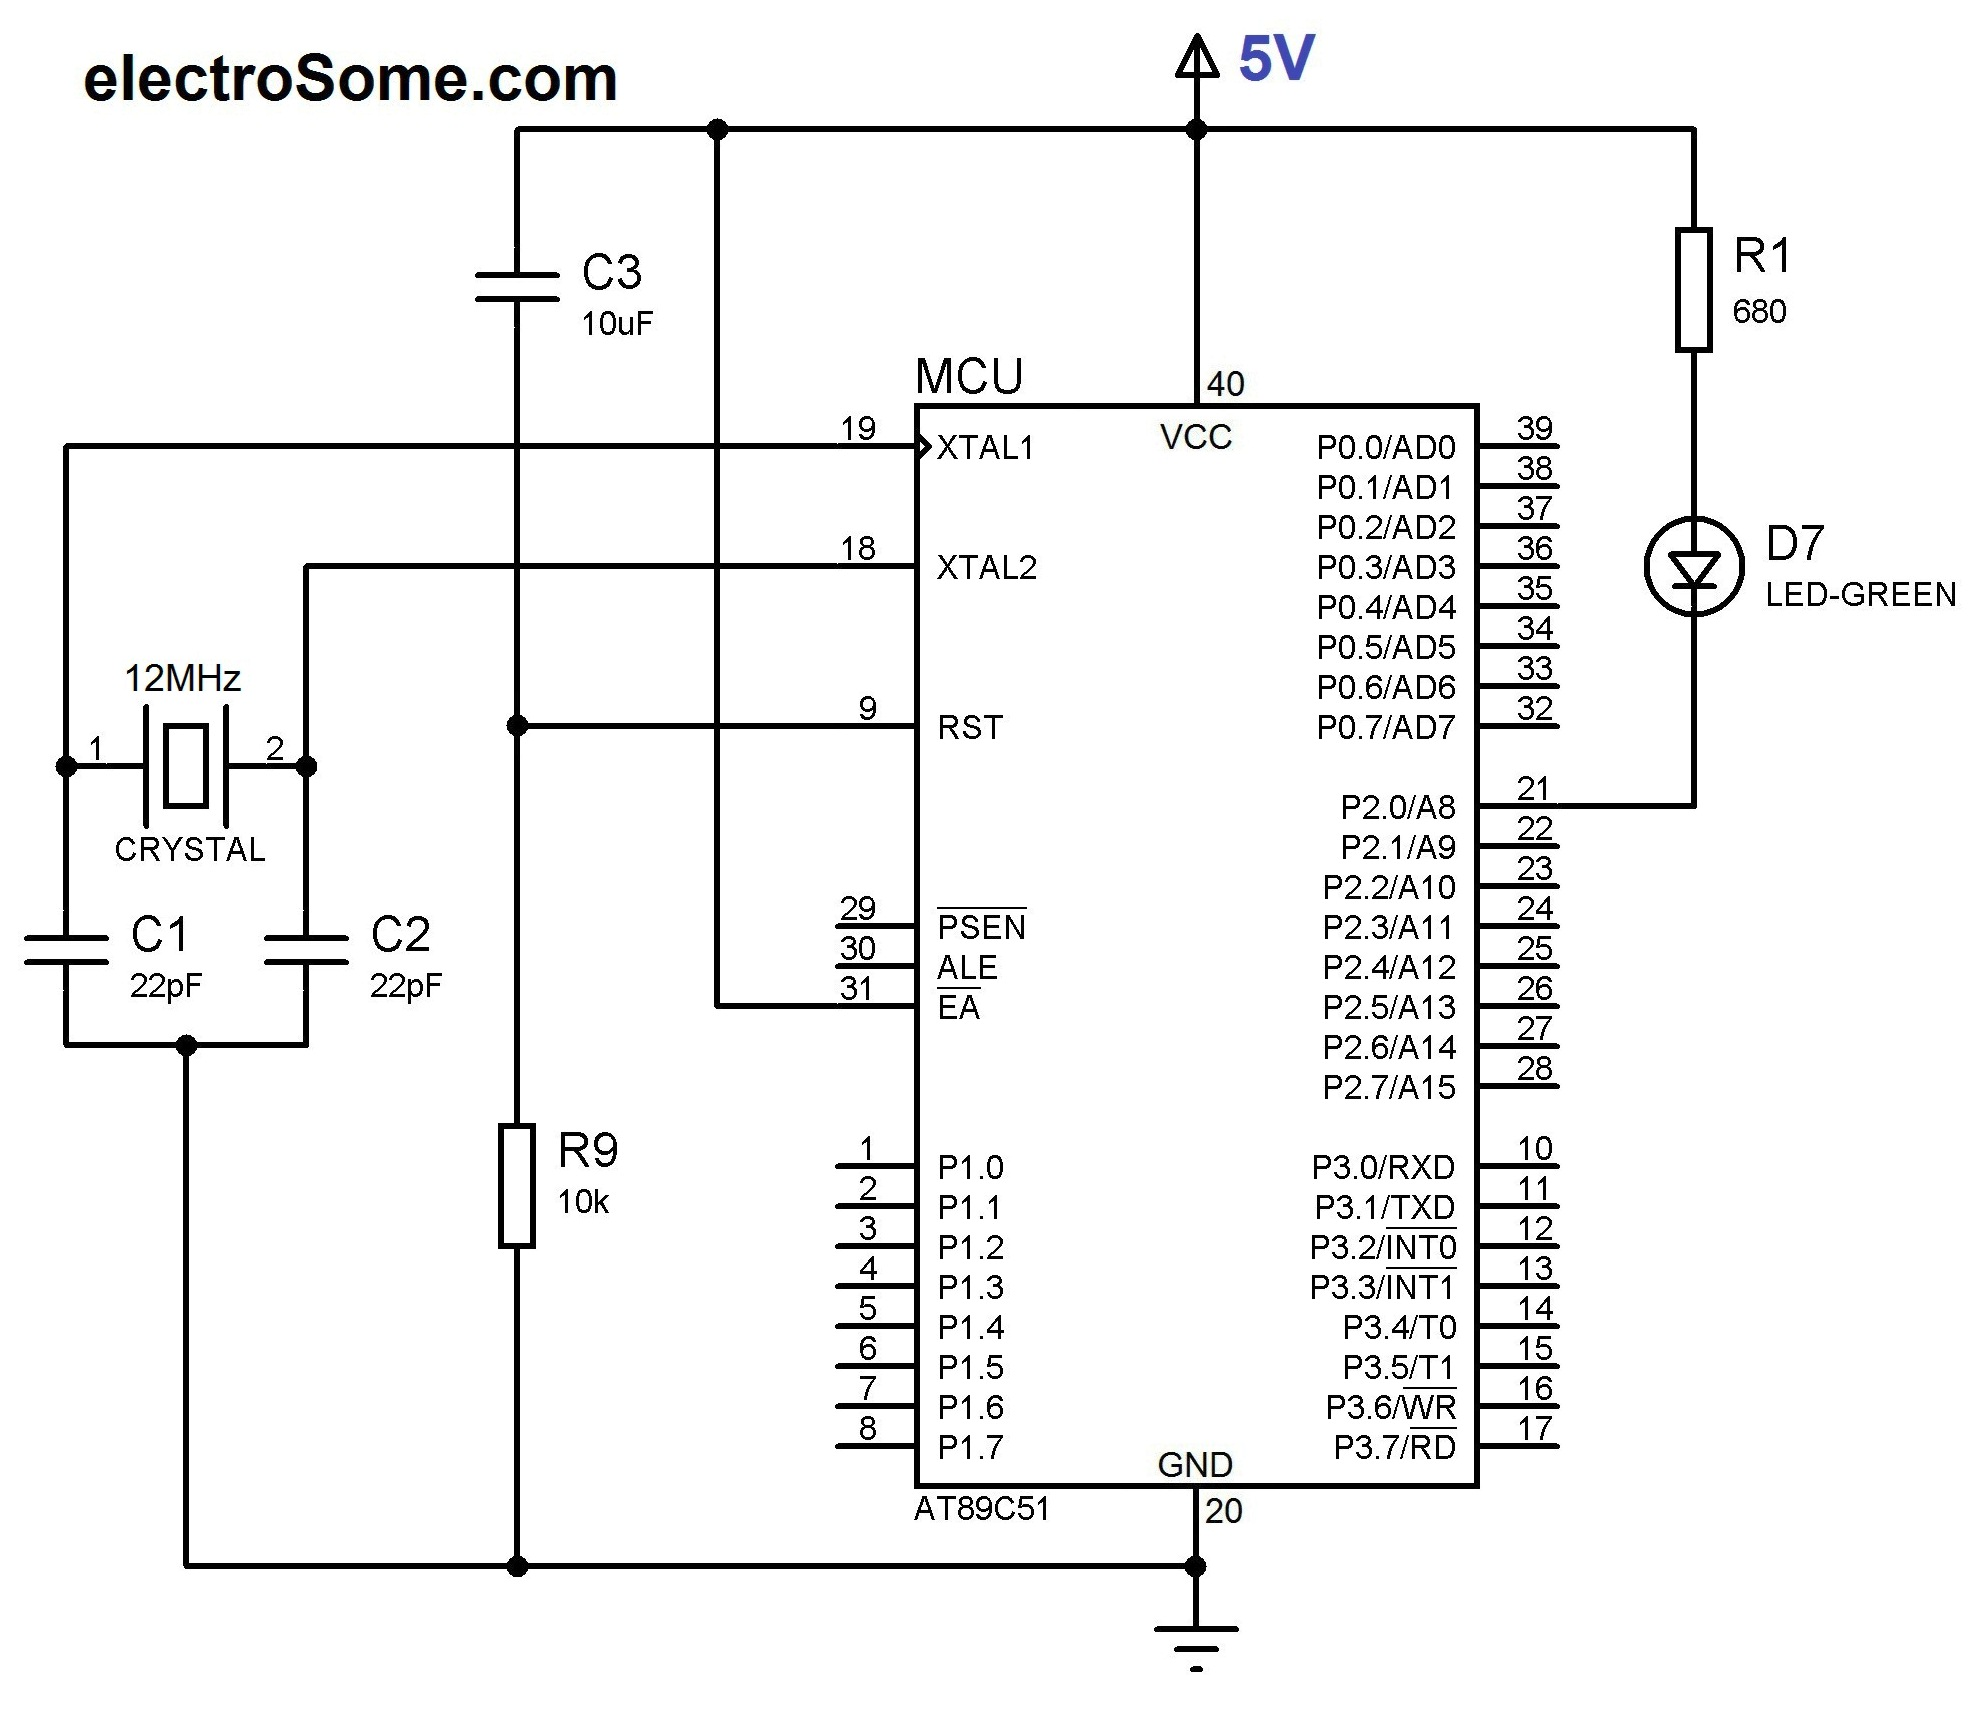 LED Blinking using 8051 Microcontroller and Keil C - AT89C51